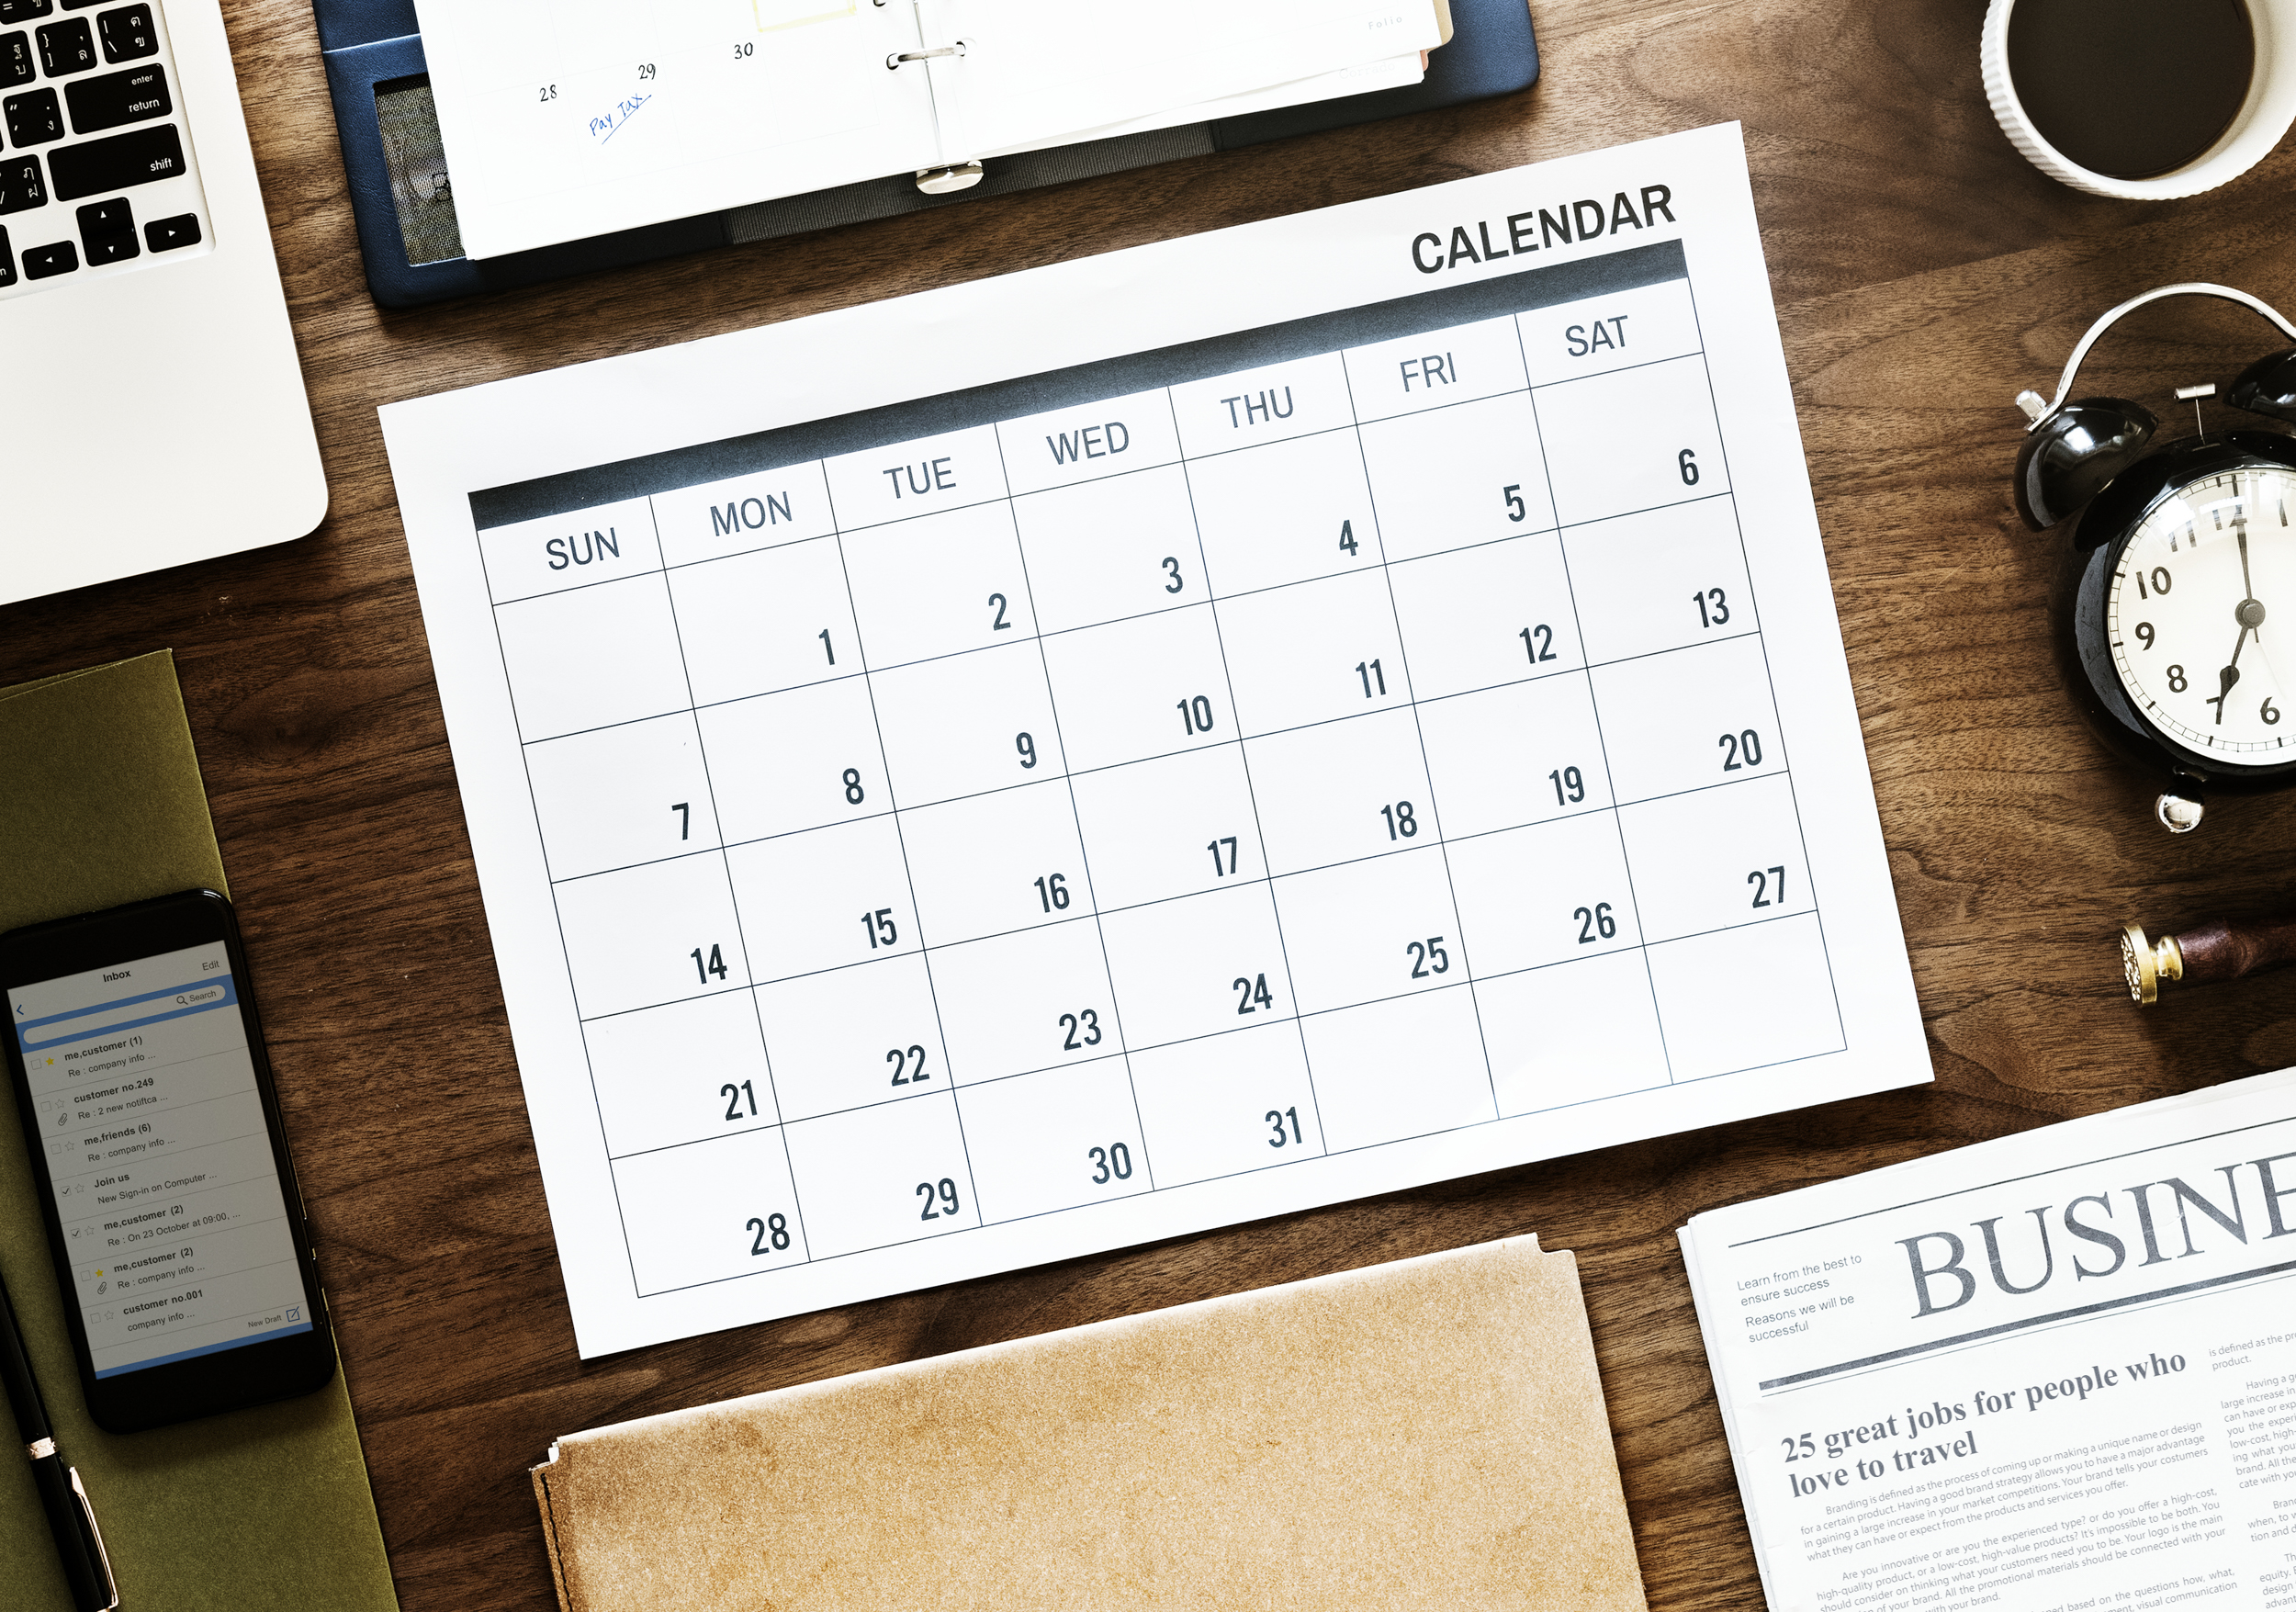 Does using a scheduler help in the long run?